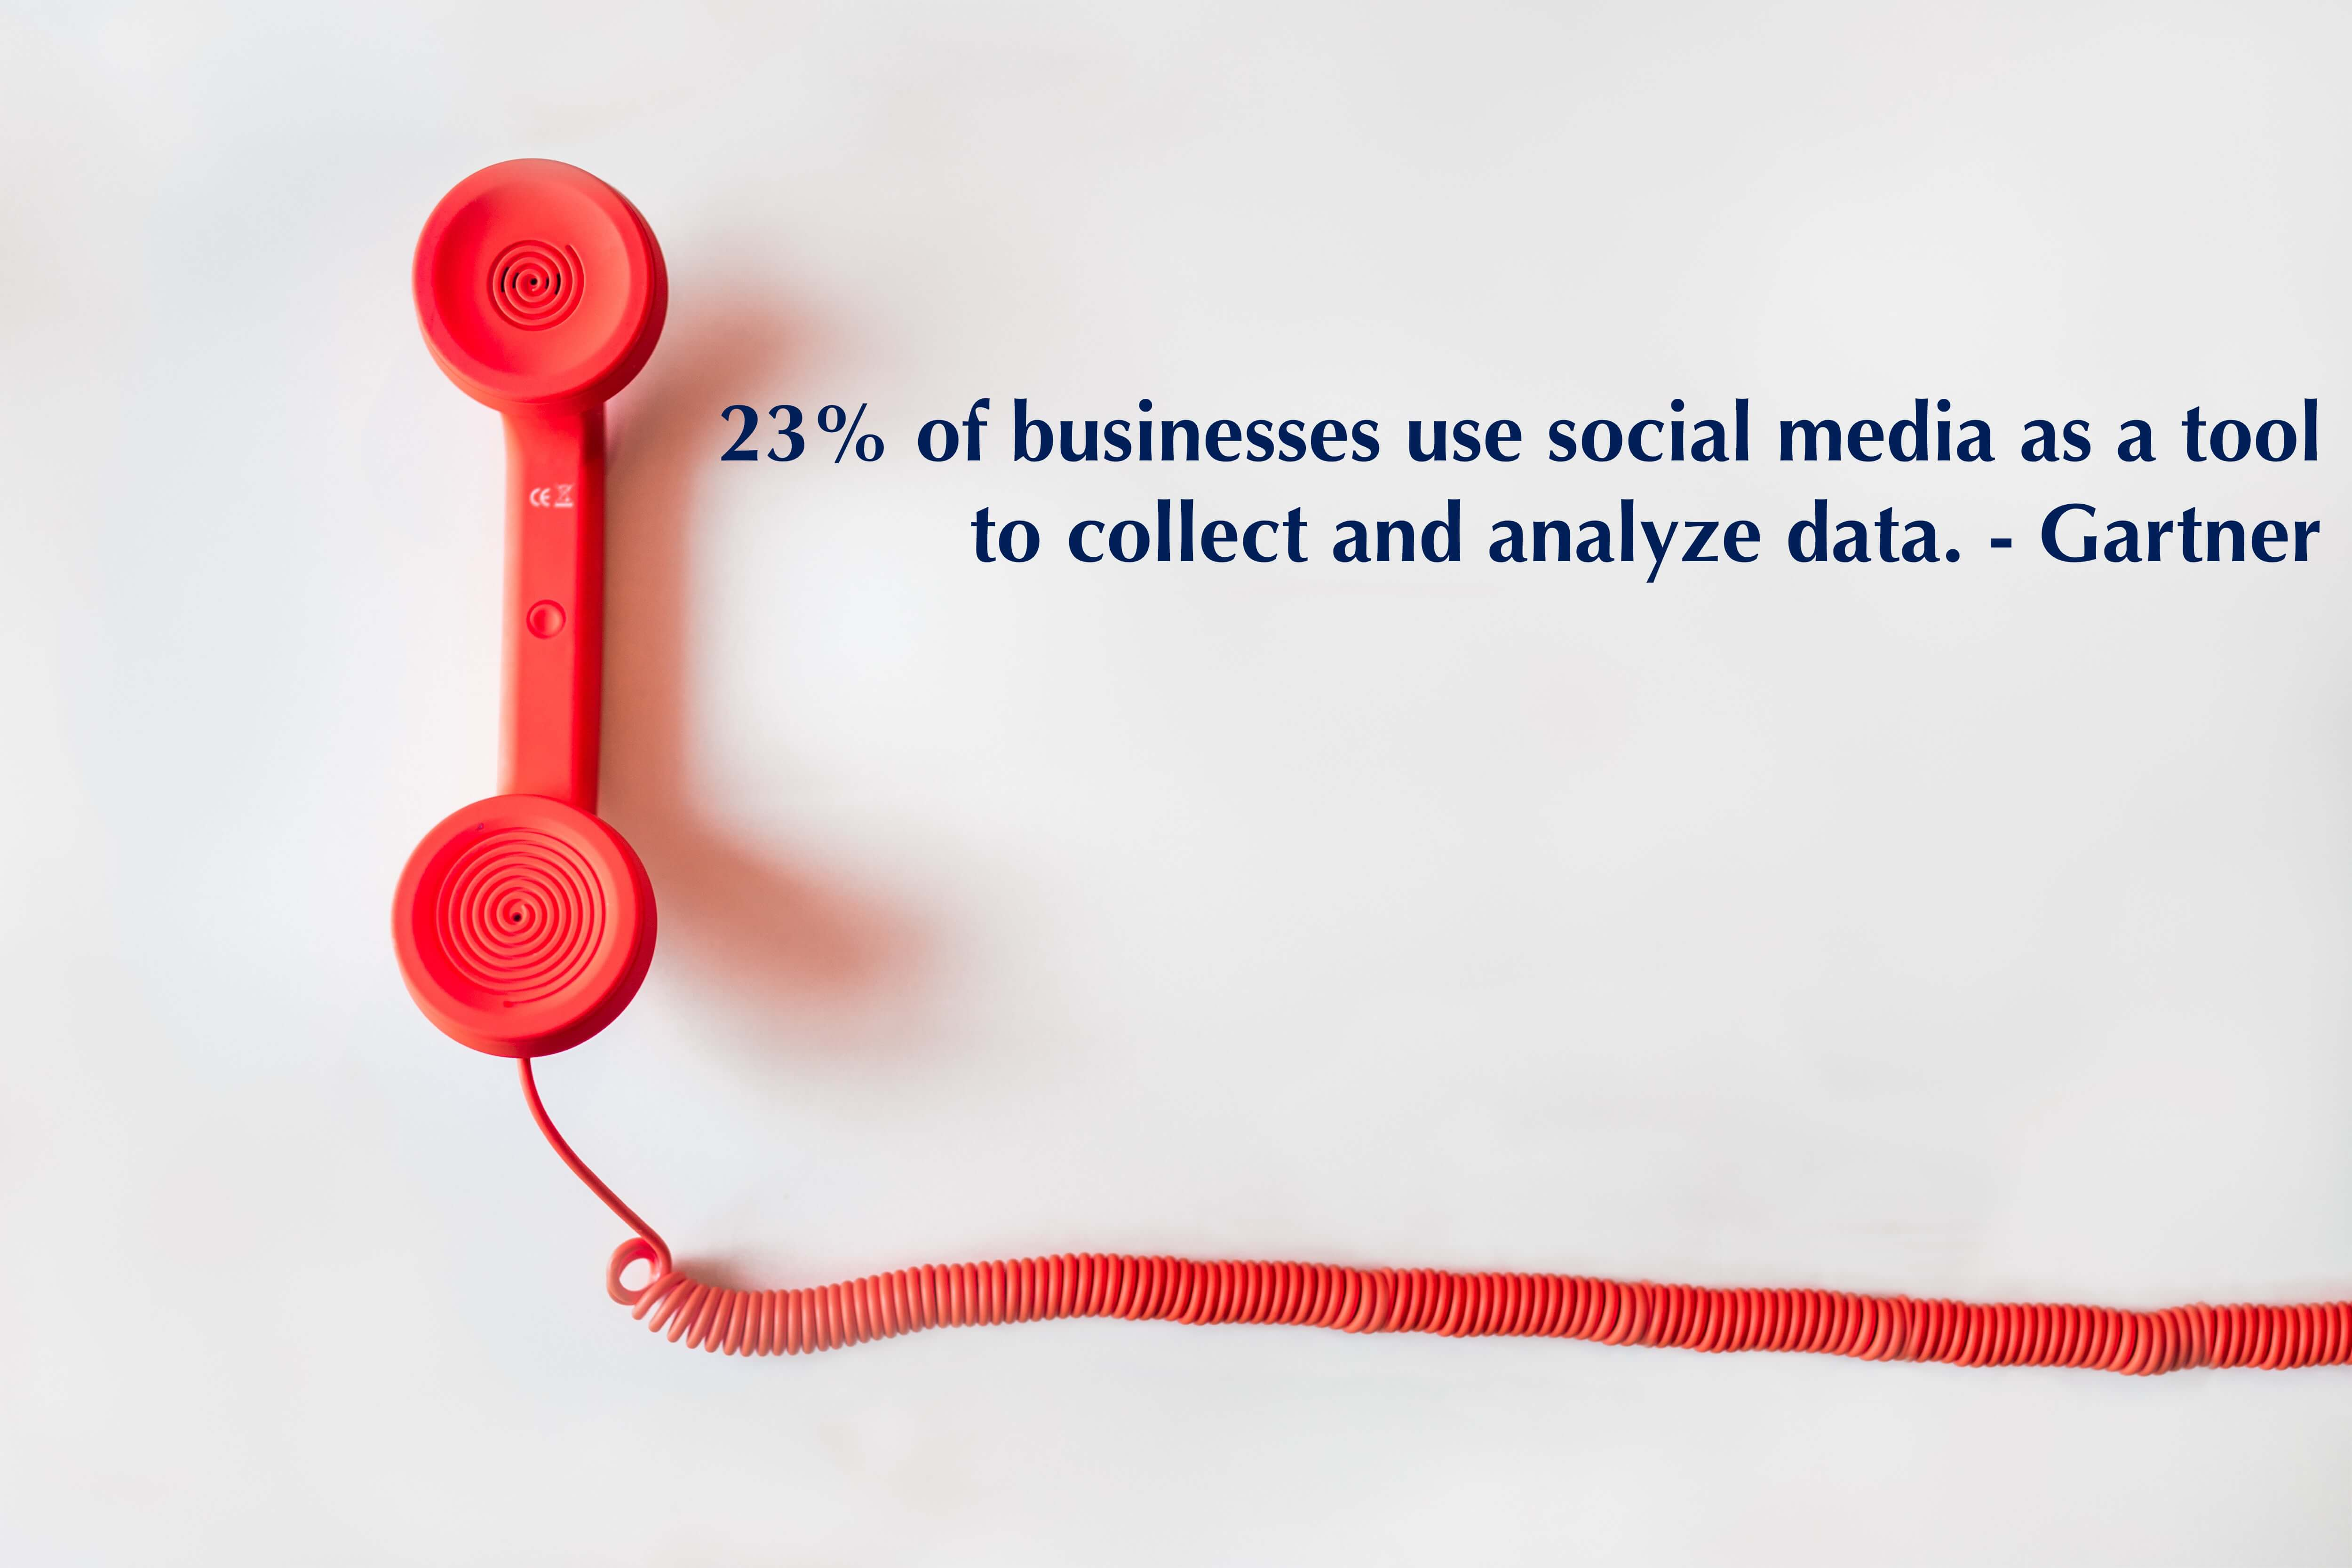 23% of businesses use social media as a tool to collect and analyze data. - Gartner